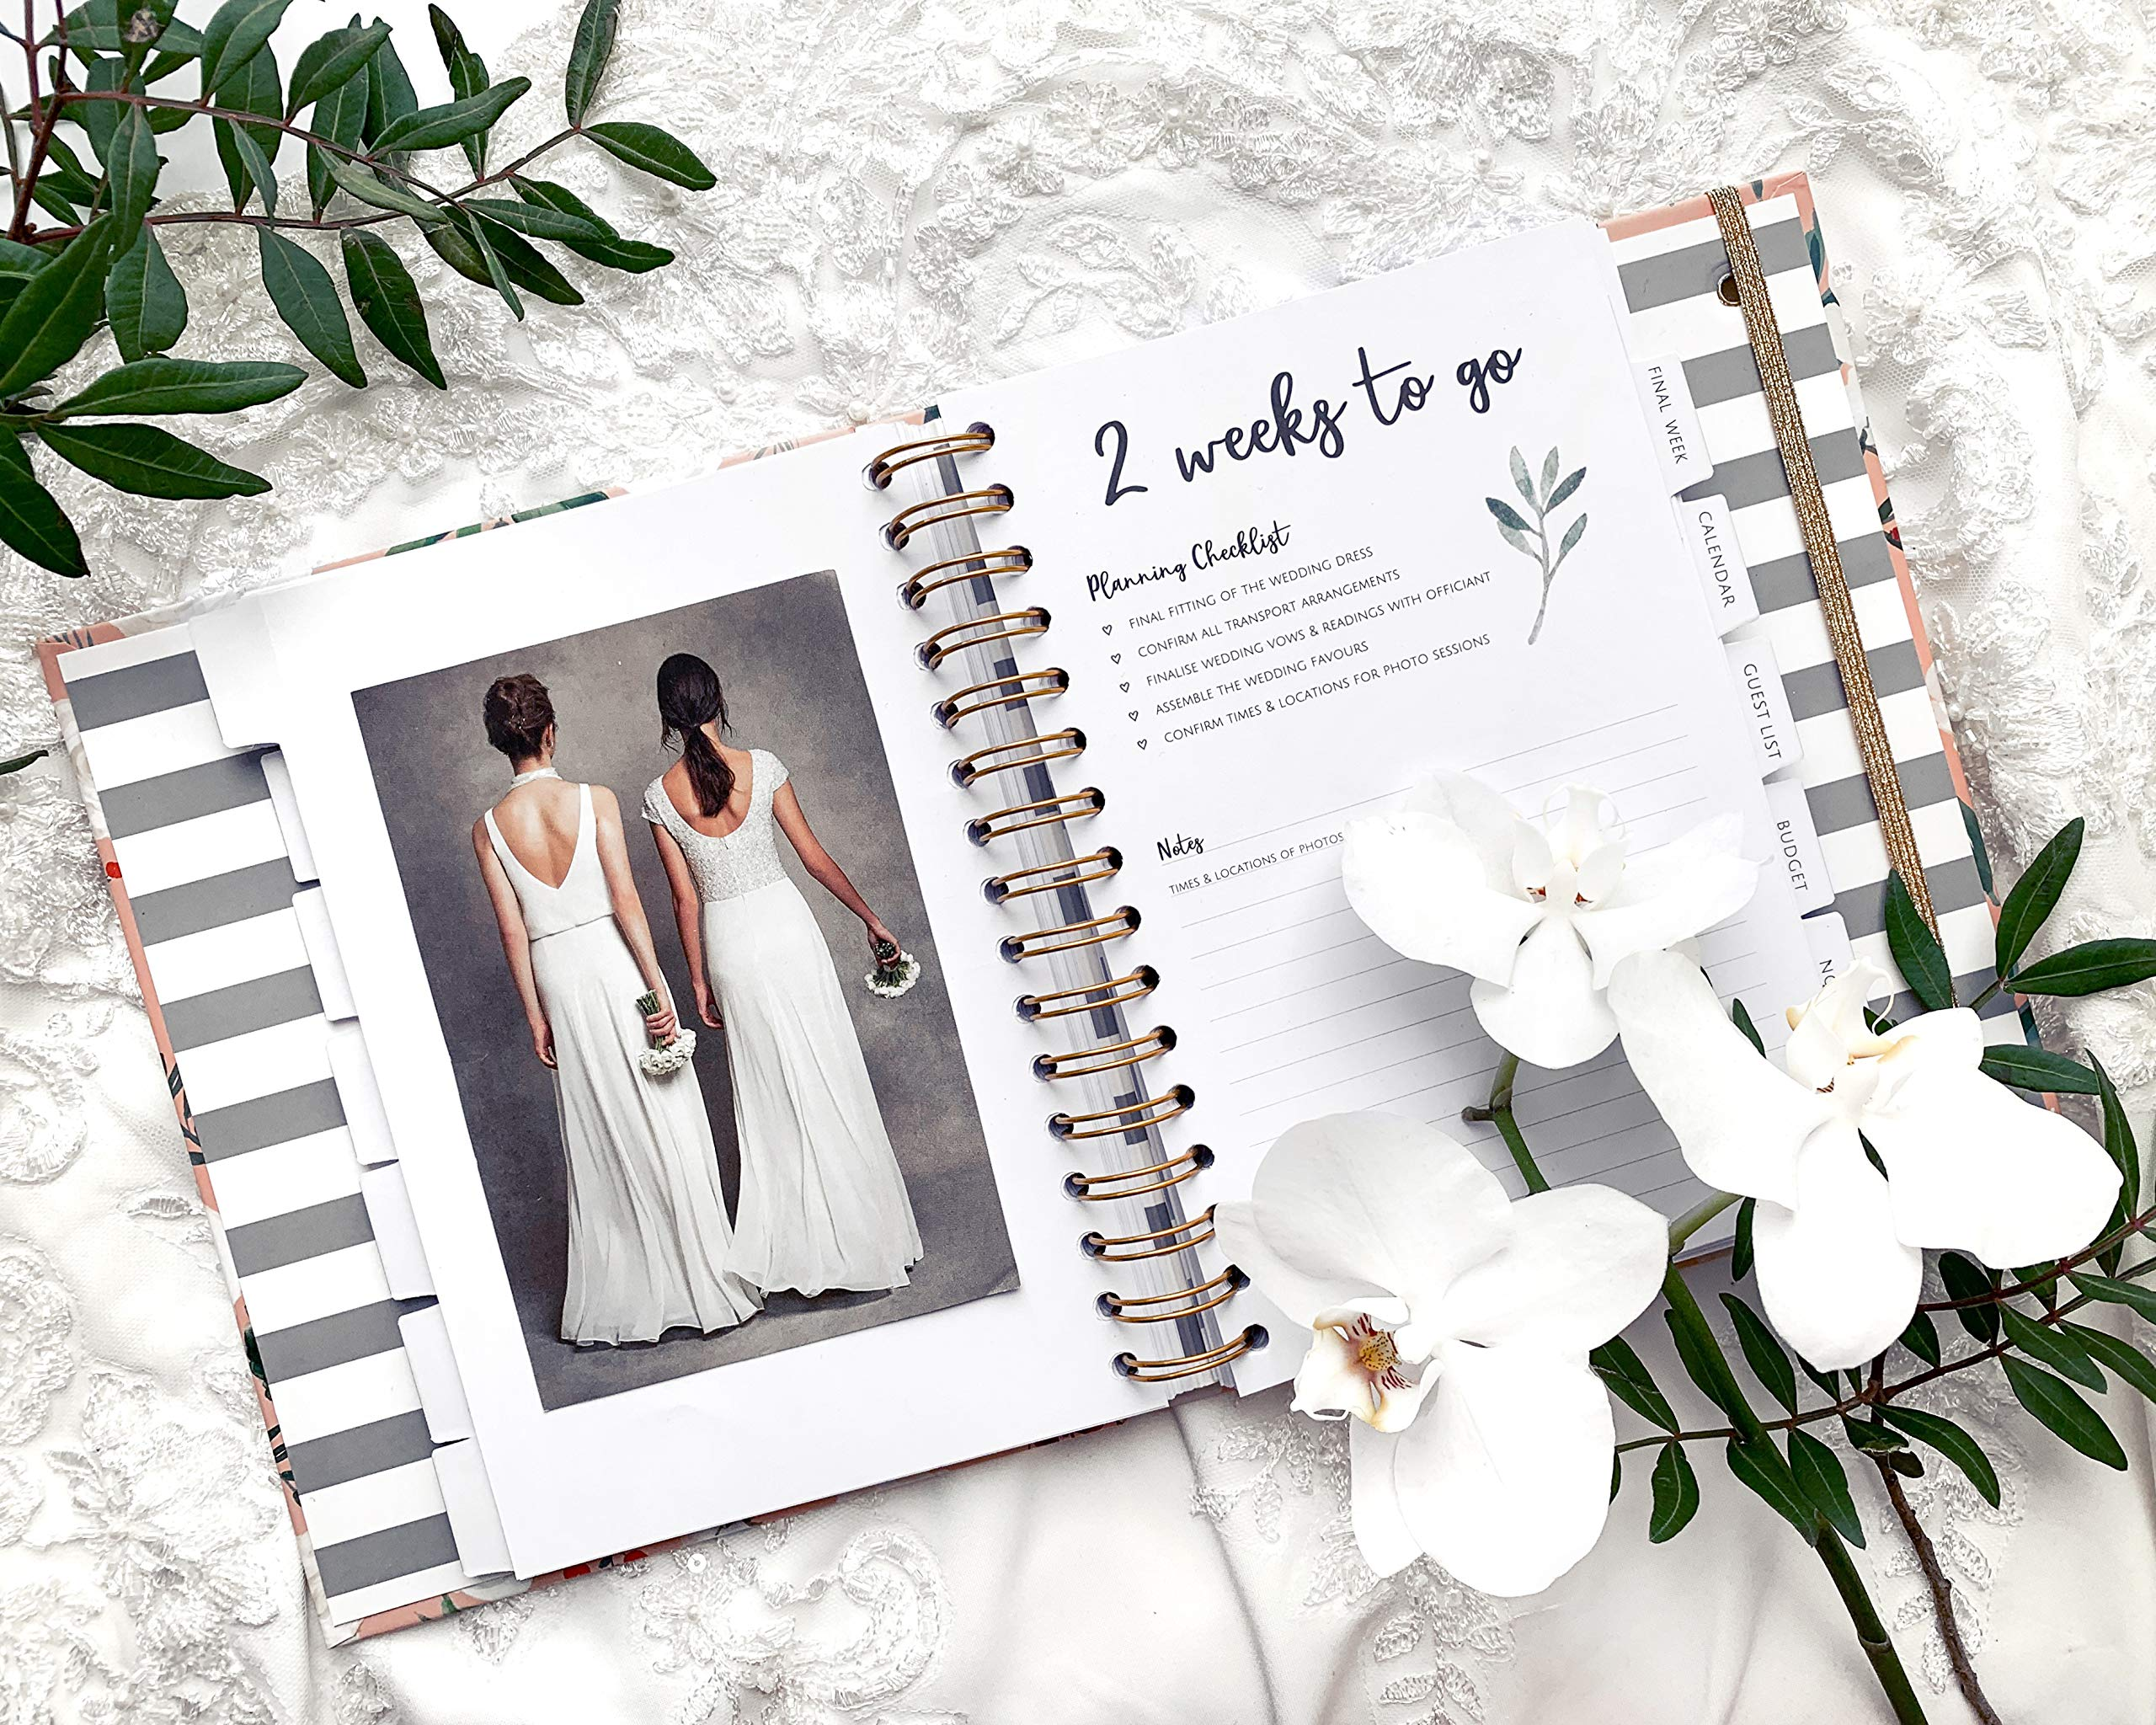 The Dream Wedding Planner | Luxury Wedding Organizer Book with Beautiful Souvenir Gift Box | Ideal Engagement Present for Couples | Perfect for Planning Your Dream Wedding by The Caledonia Design Co. (Image #3)